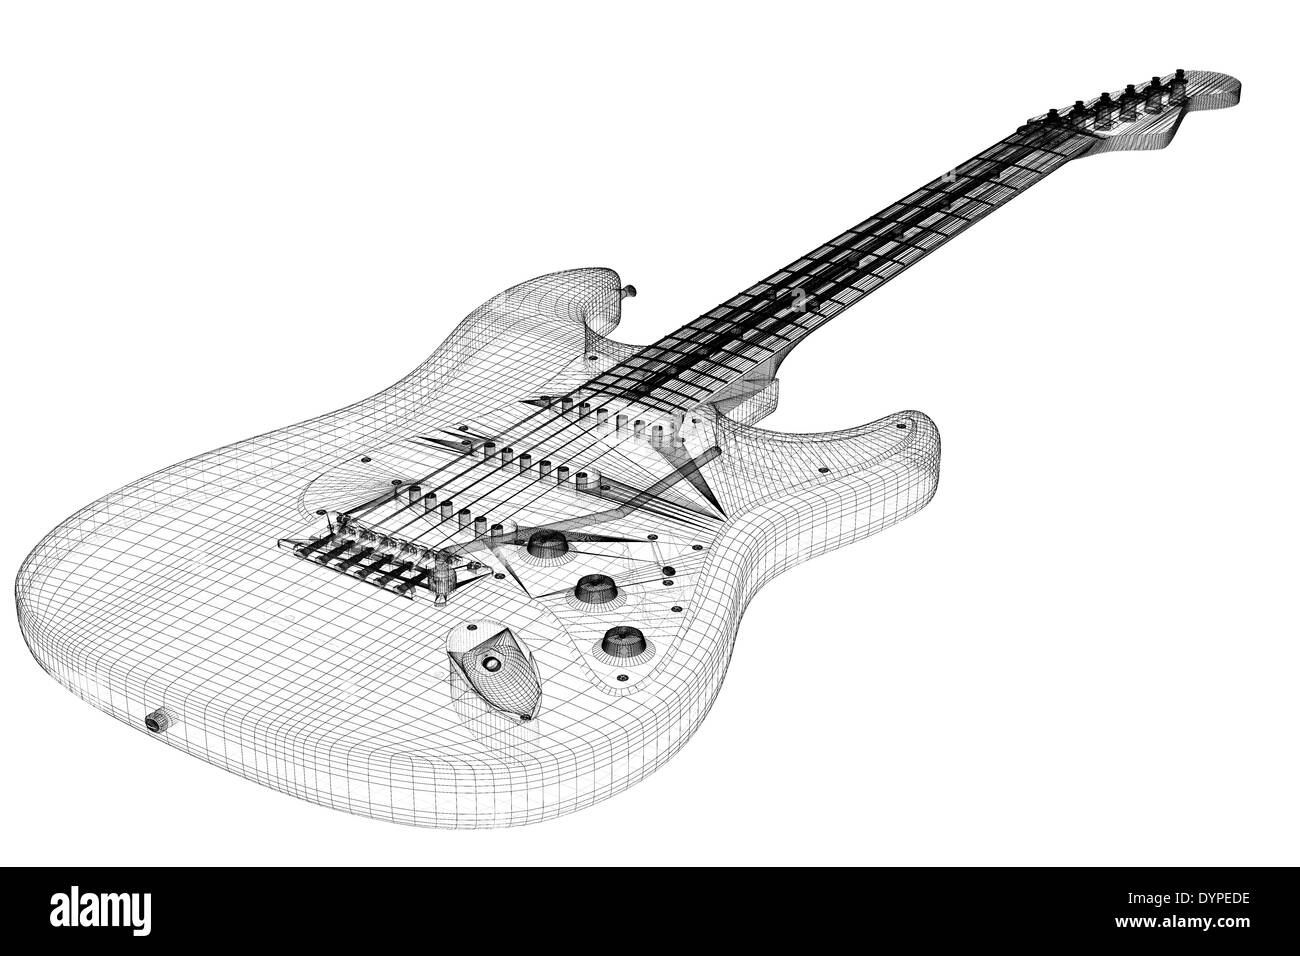 Fine Core Switch Diagram Thick Pot Diagram Solid Car Alarm Wiring Two Humbuckers One Volume One Tone Young Wire Guitars GreenDiagram Solar Panel Electric Guitar 3D Model Body Structure, Wire Model Stock Photo ..